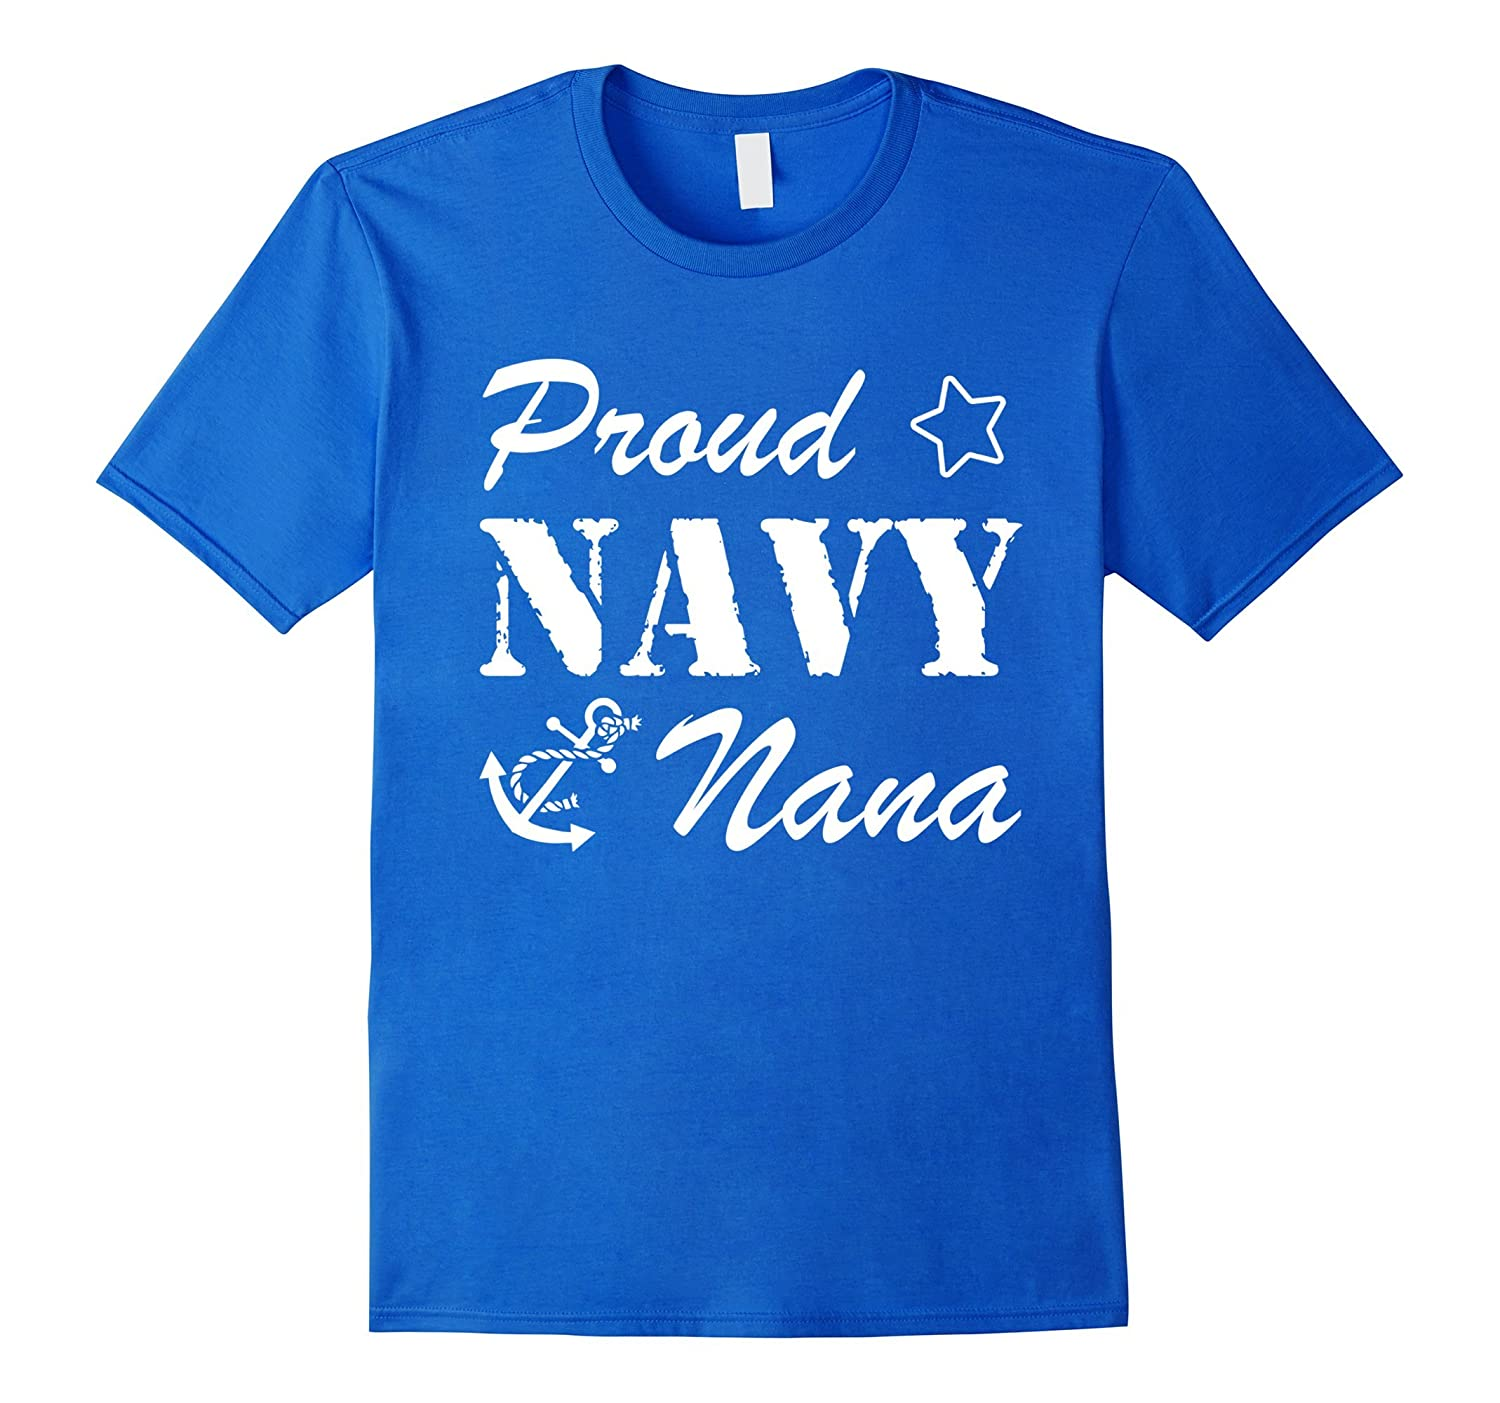 Best Gift for Army – Proud Navy Nana Anchor T-shirt